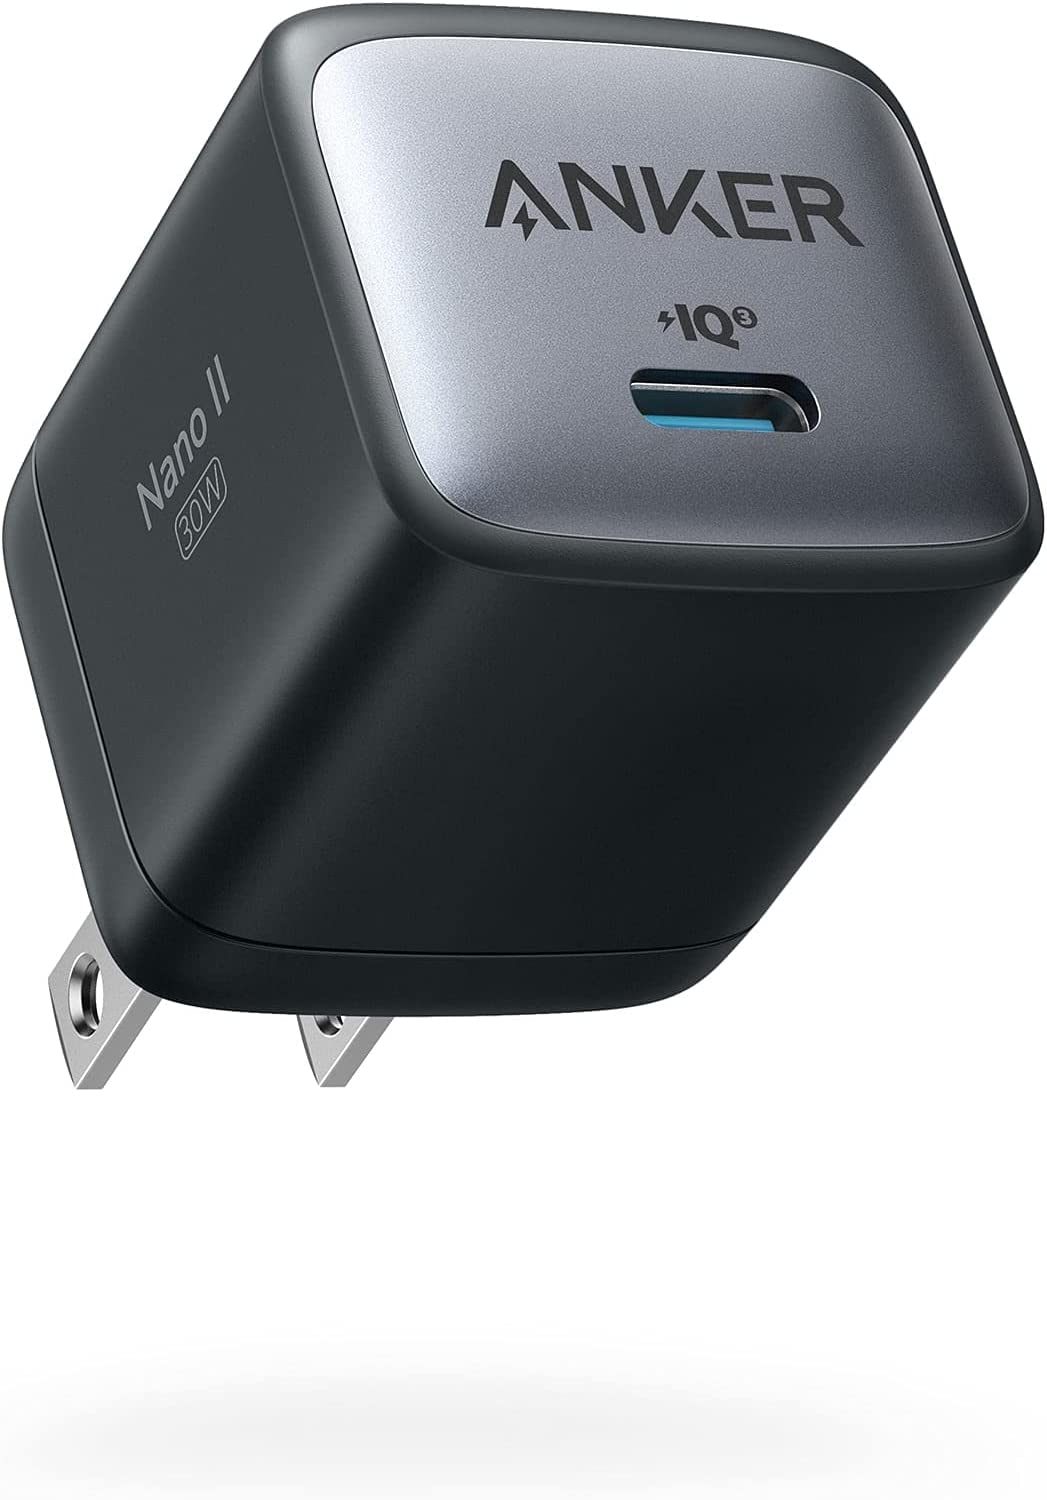 USB C Charger, Anker Nano II 30W Fast Charger Adapter, GaN II Compact Charger for MacBook Air/iPhone 12/12 Mini/ 12 Pro/Max, Galaxy S21/ S21+, Note 20/ Note 10, iPad Pro, Pixel, and More